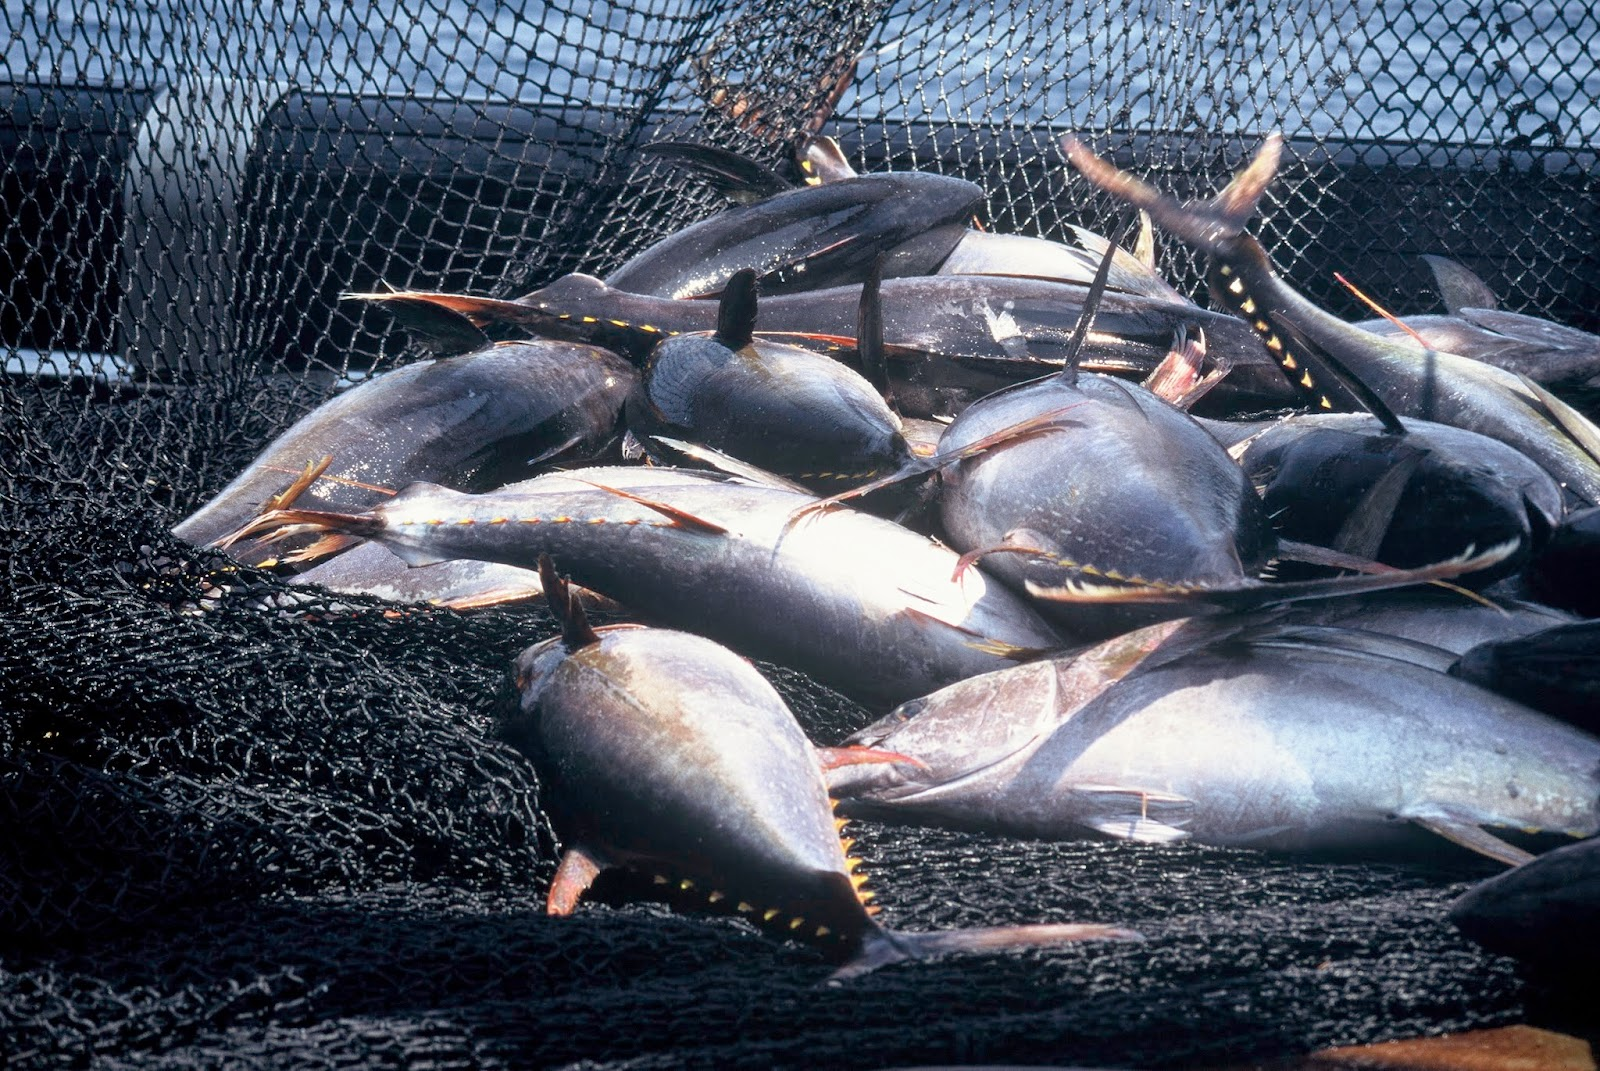 Fish exports jump by 20% in first quarter 2014